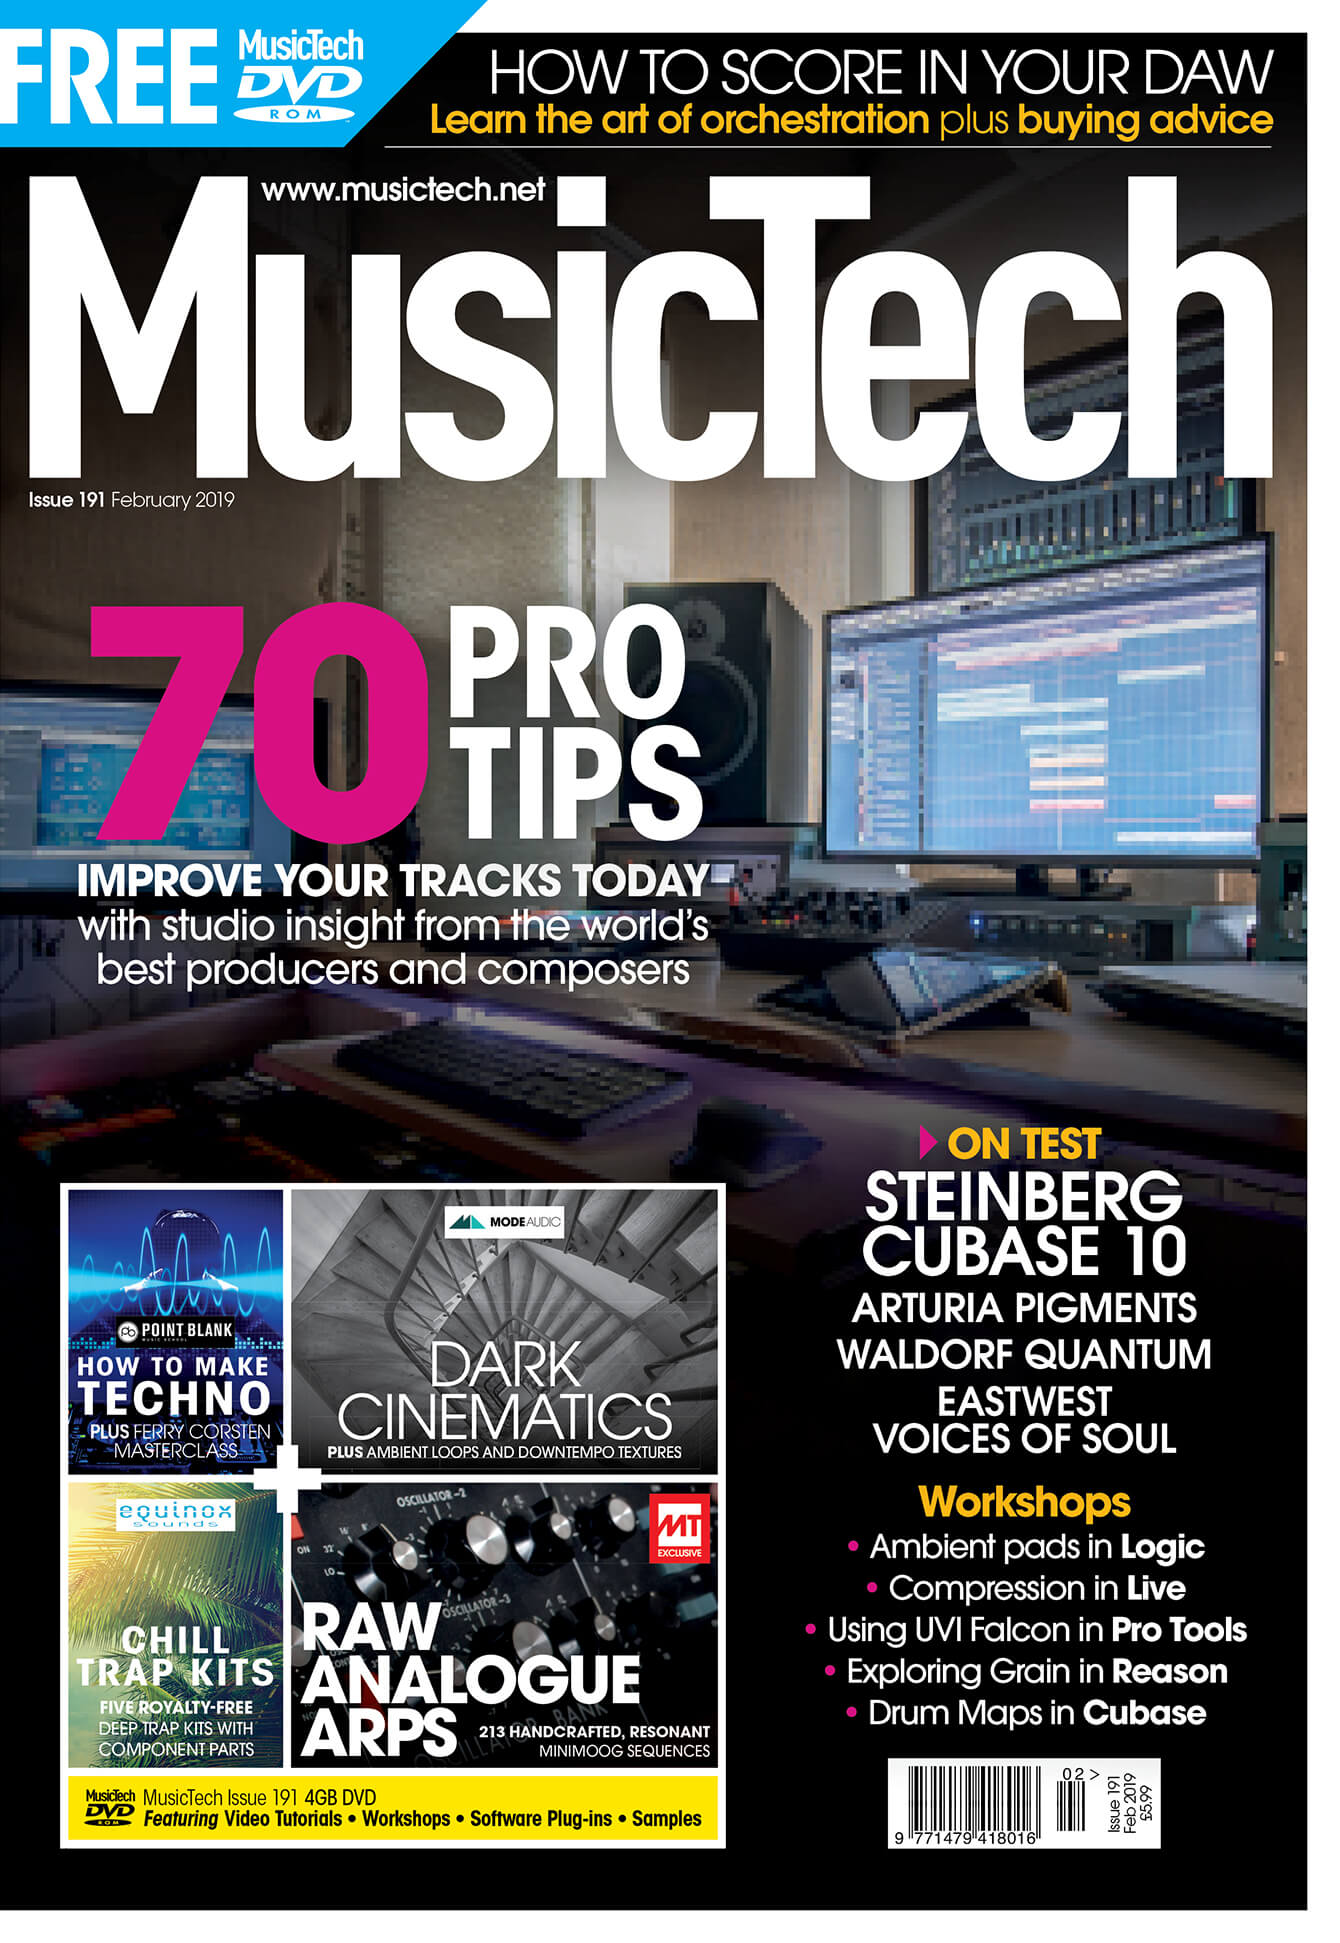 70 pro tips to improve your tracks